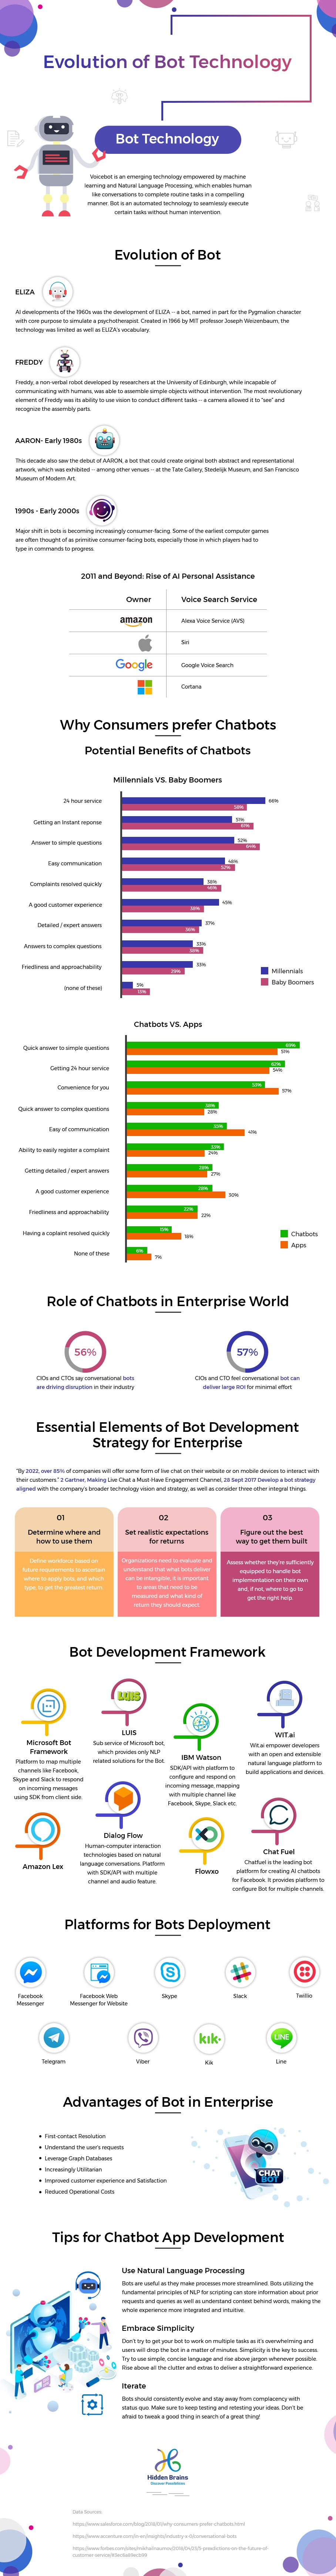 Evolution-of-Bot-Technology-infographic-plaza